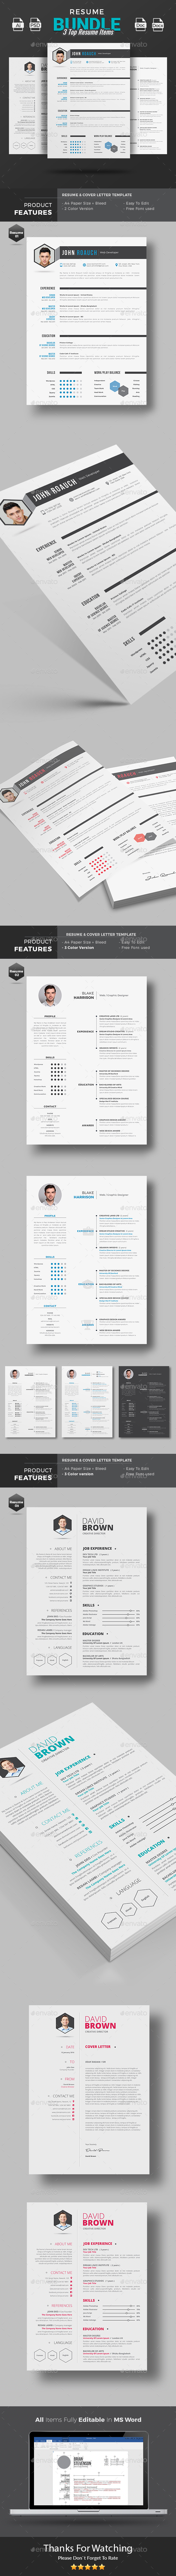 MS Word Resume - Resumes Stationery